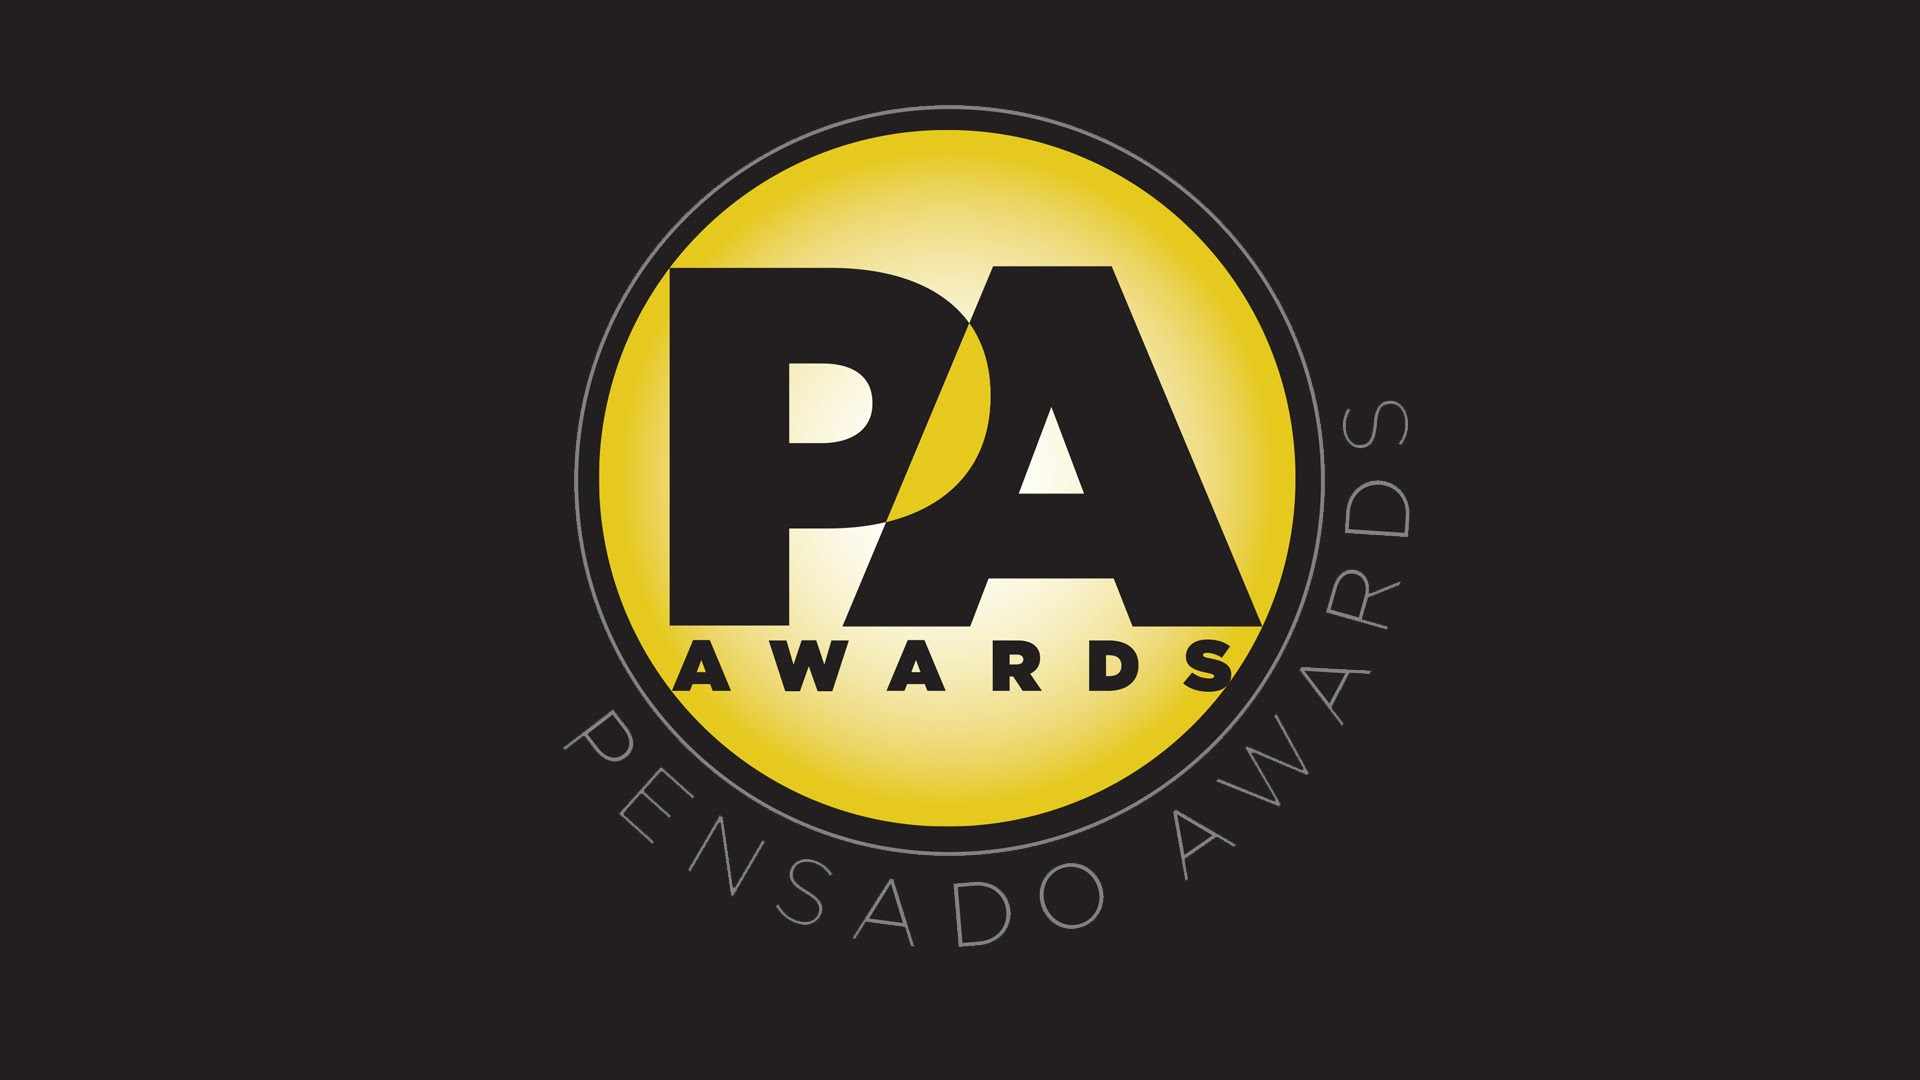 Third Annual Pensado Awards, August 20